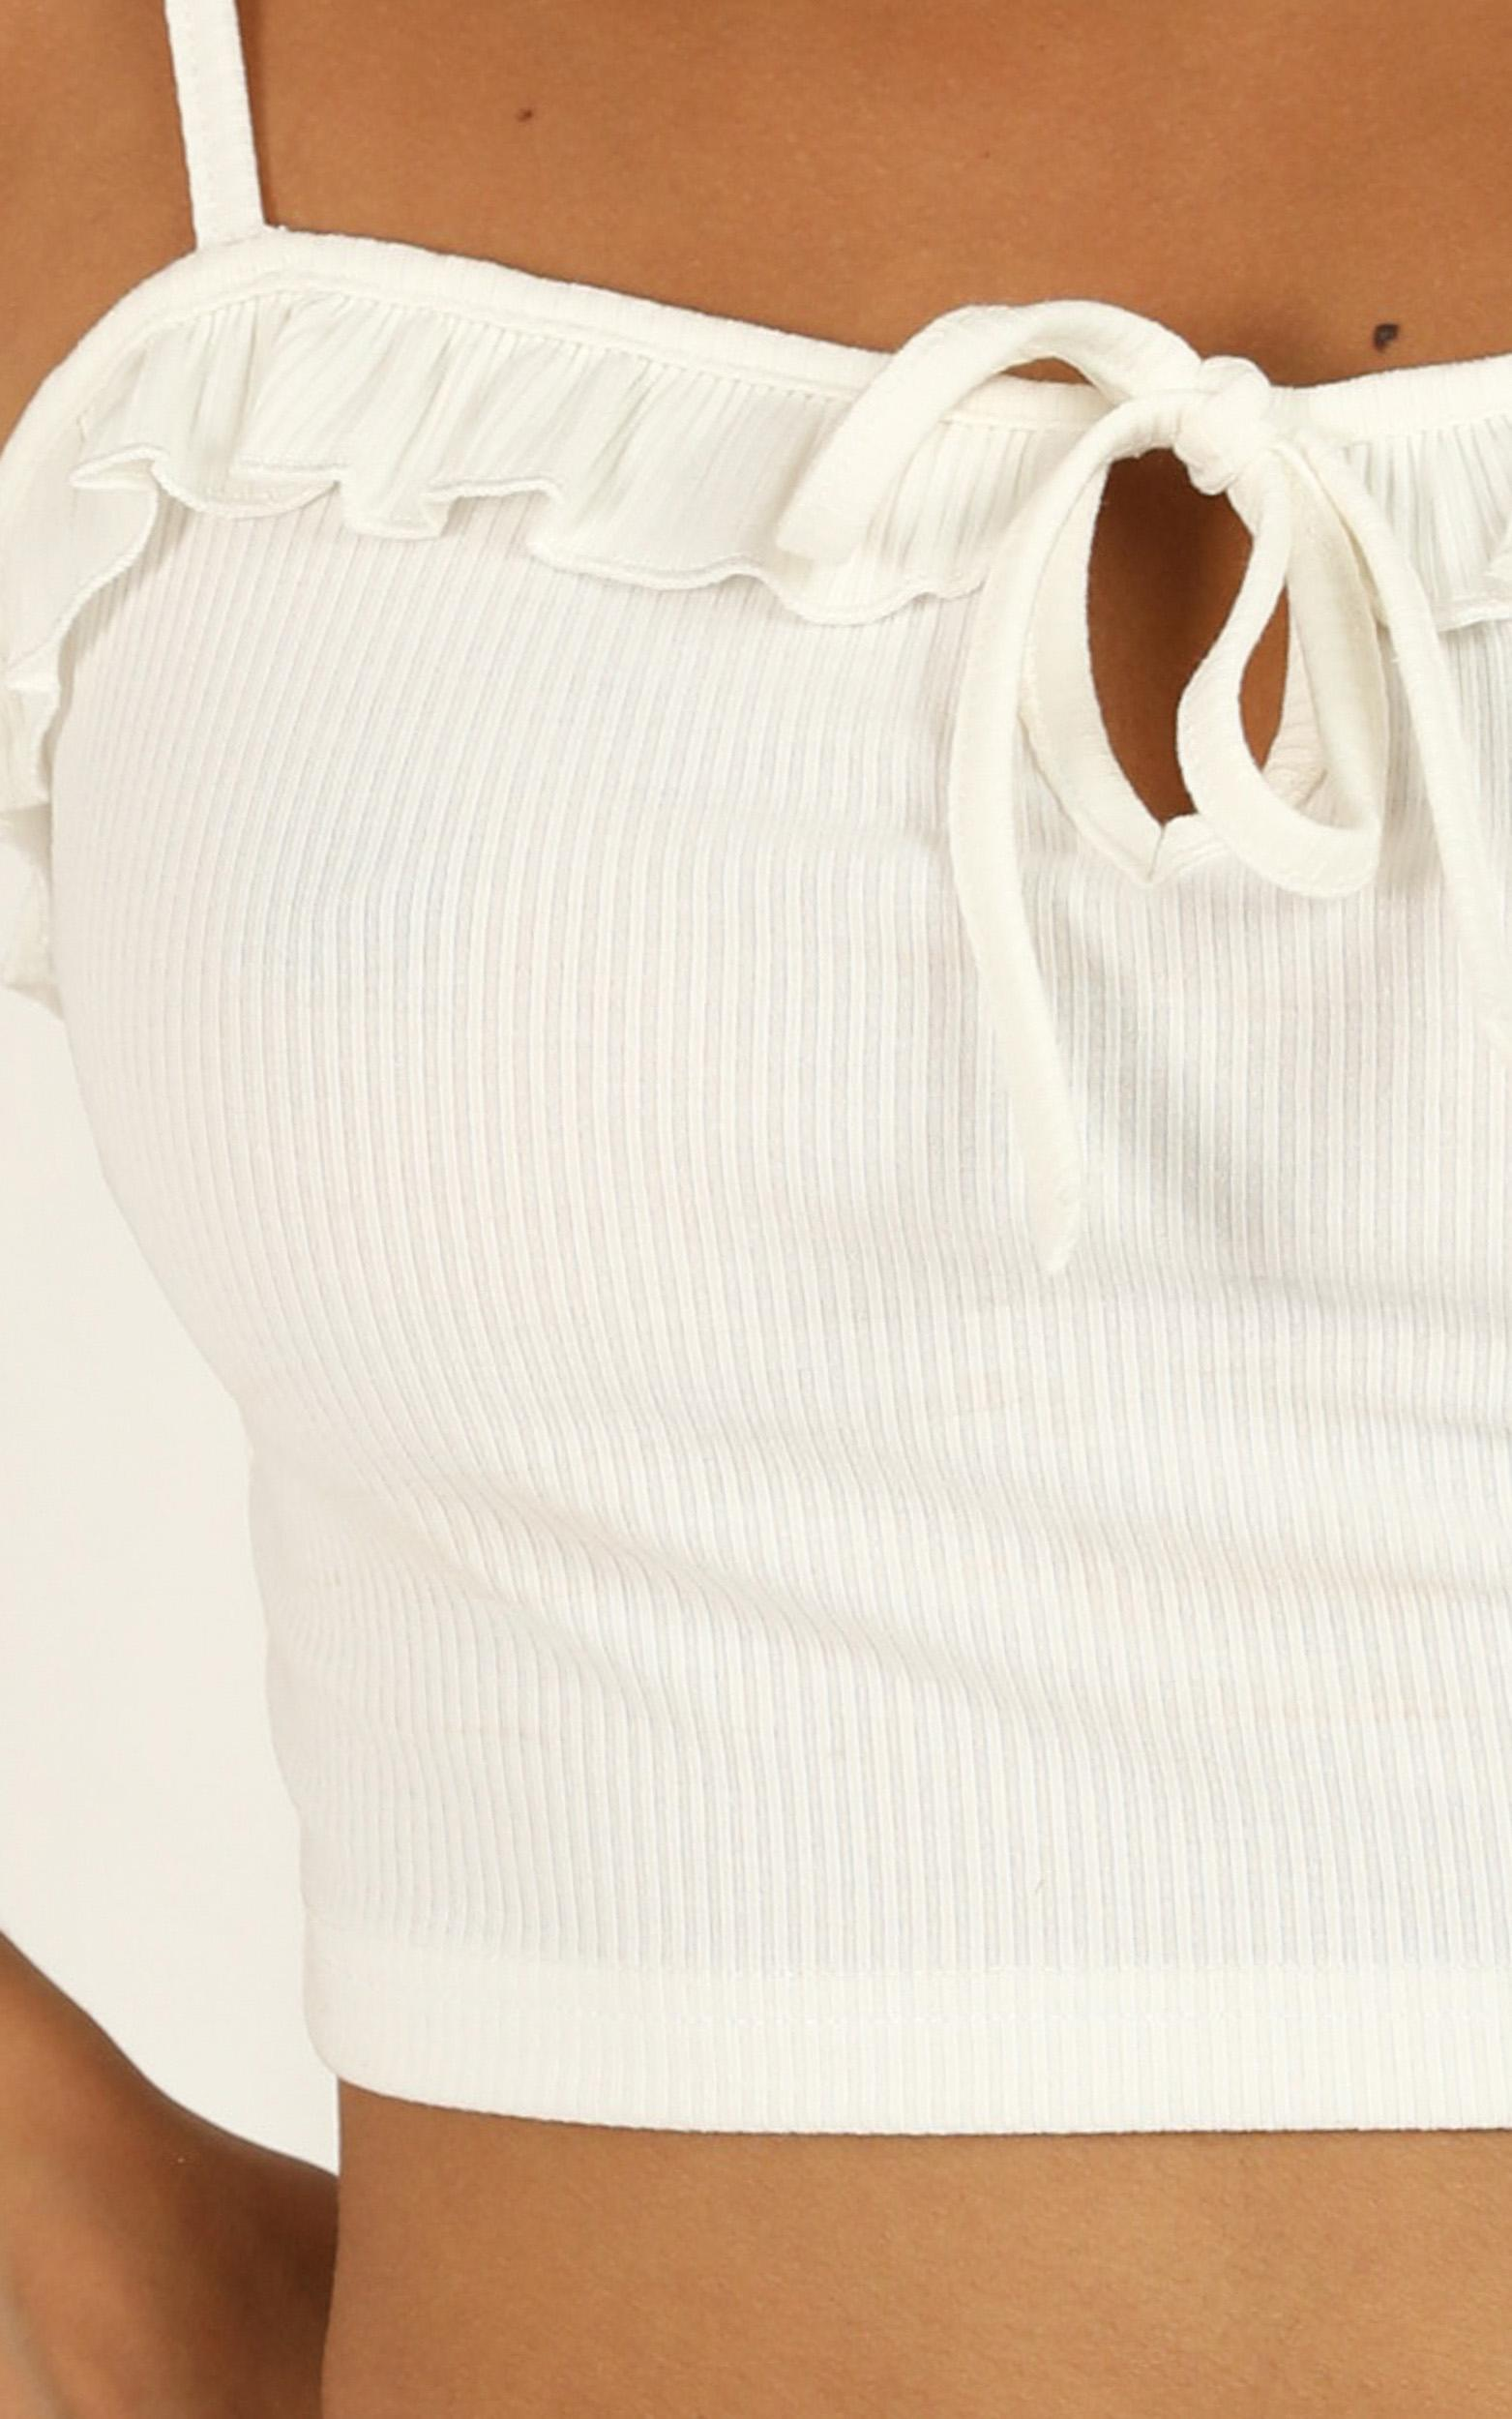 Cheeky Talk Top in white - 20 (XXXXL), White, hi-res image number null